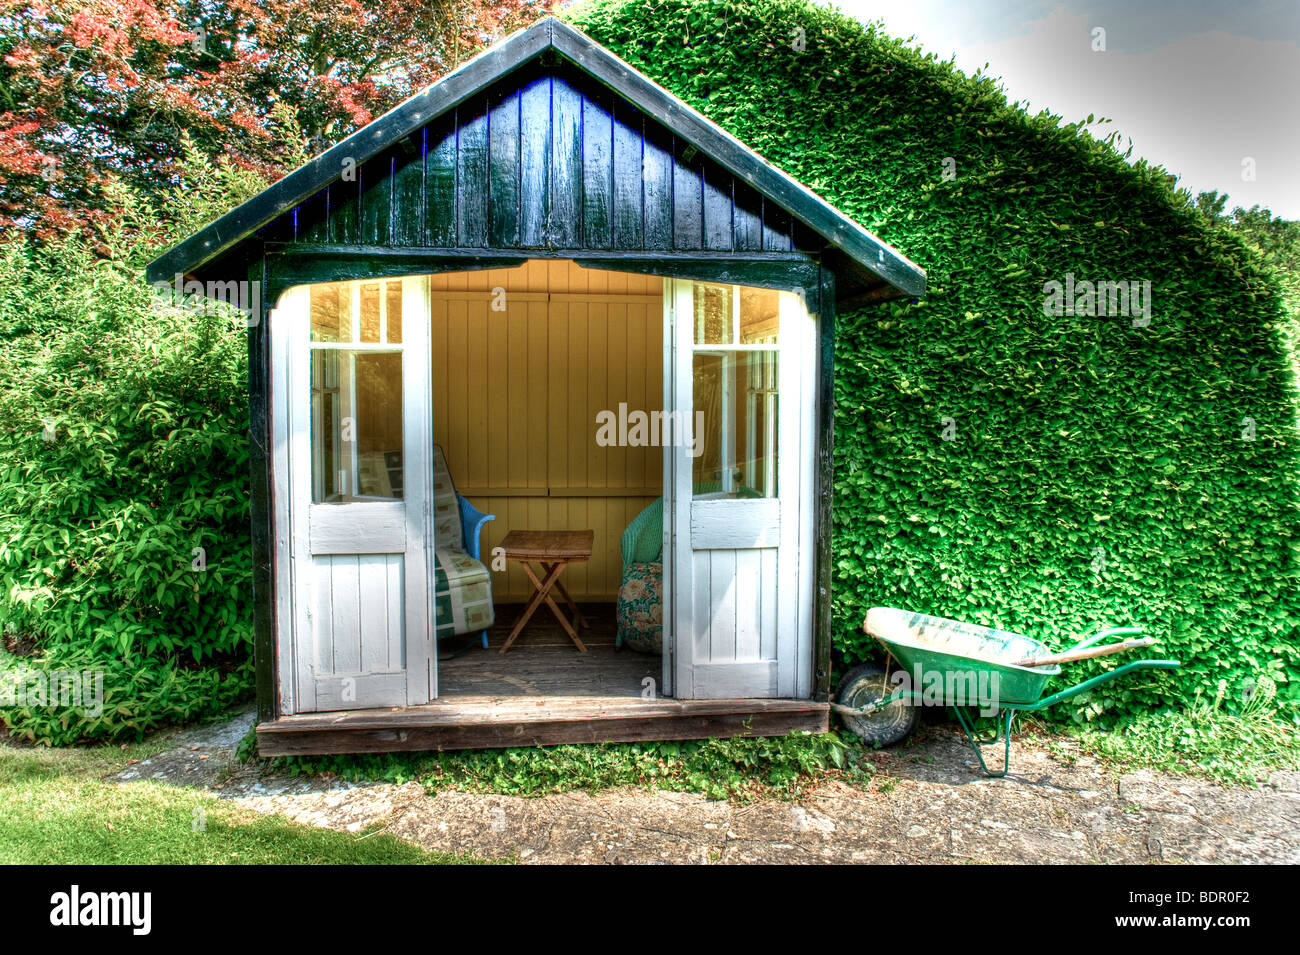 A small wooden summer house with chairs a table and a green wheelbarrow - Stock Image